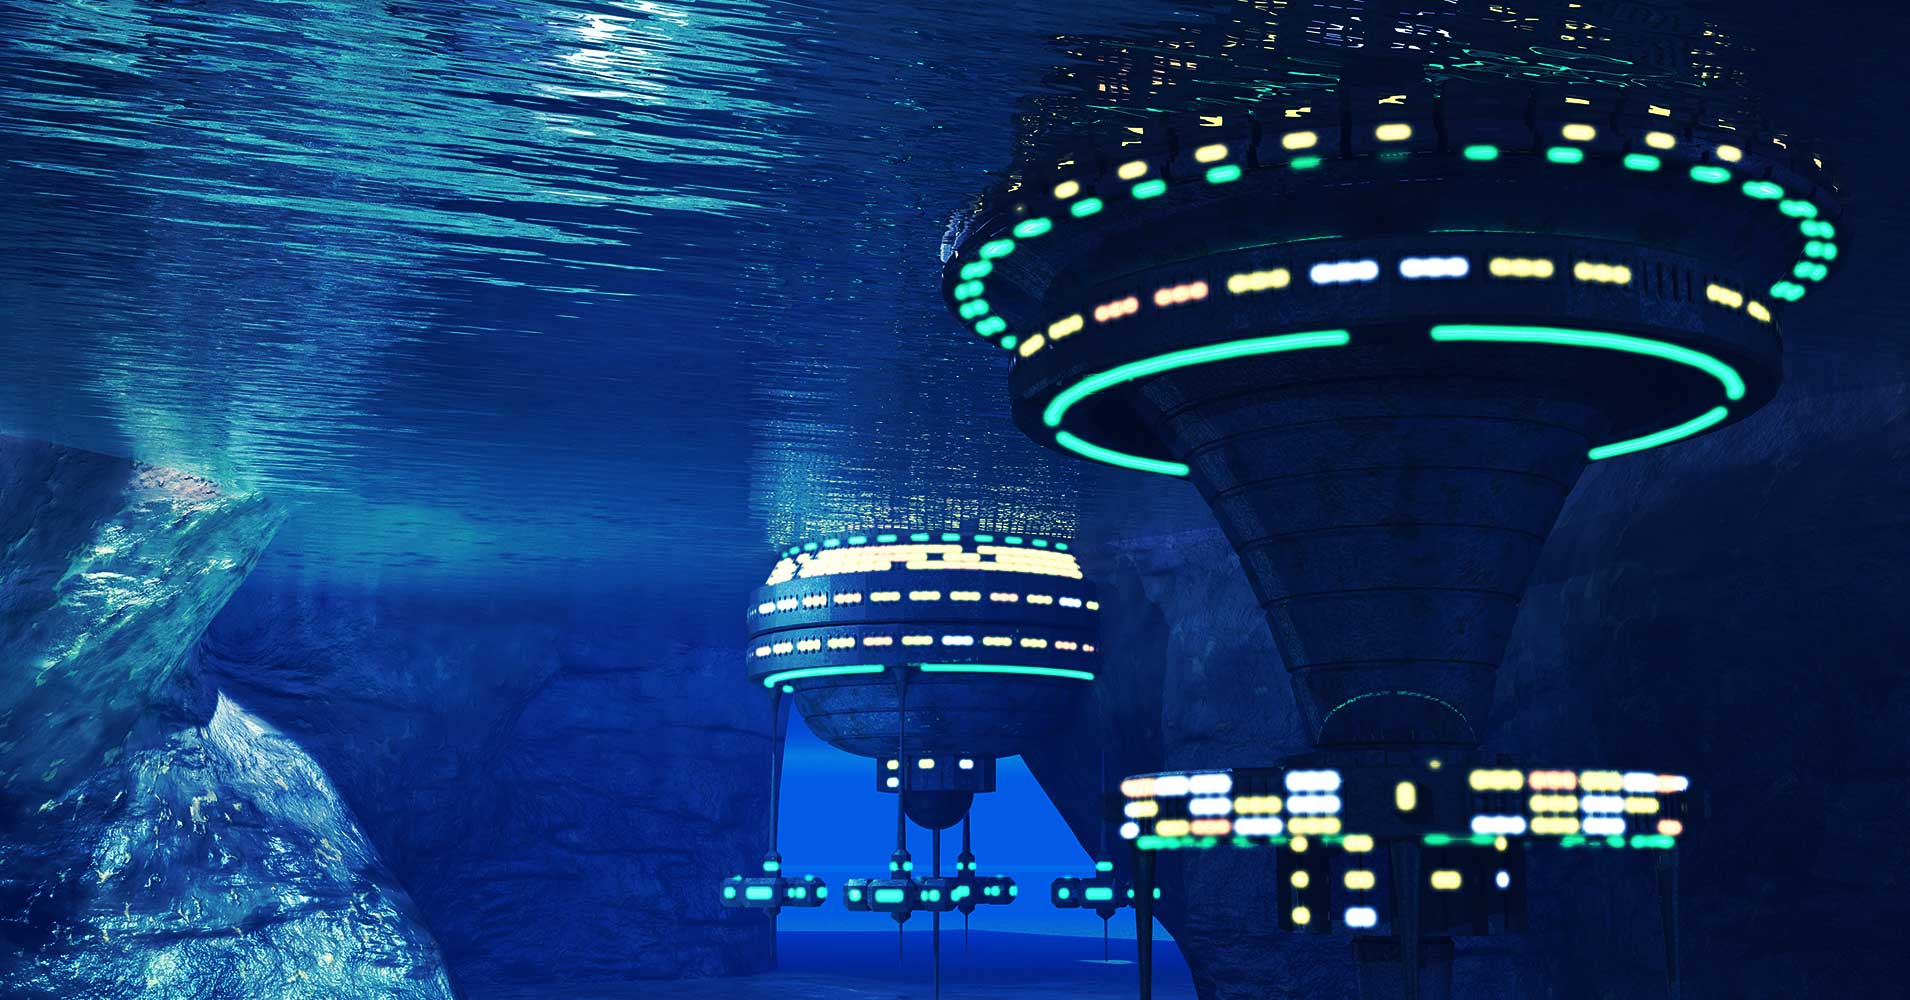 China Plans to Build a Deep Sea Base Run Entirely by AI